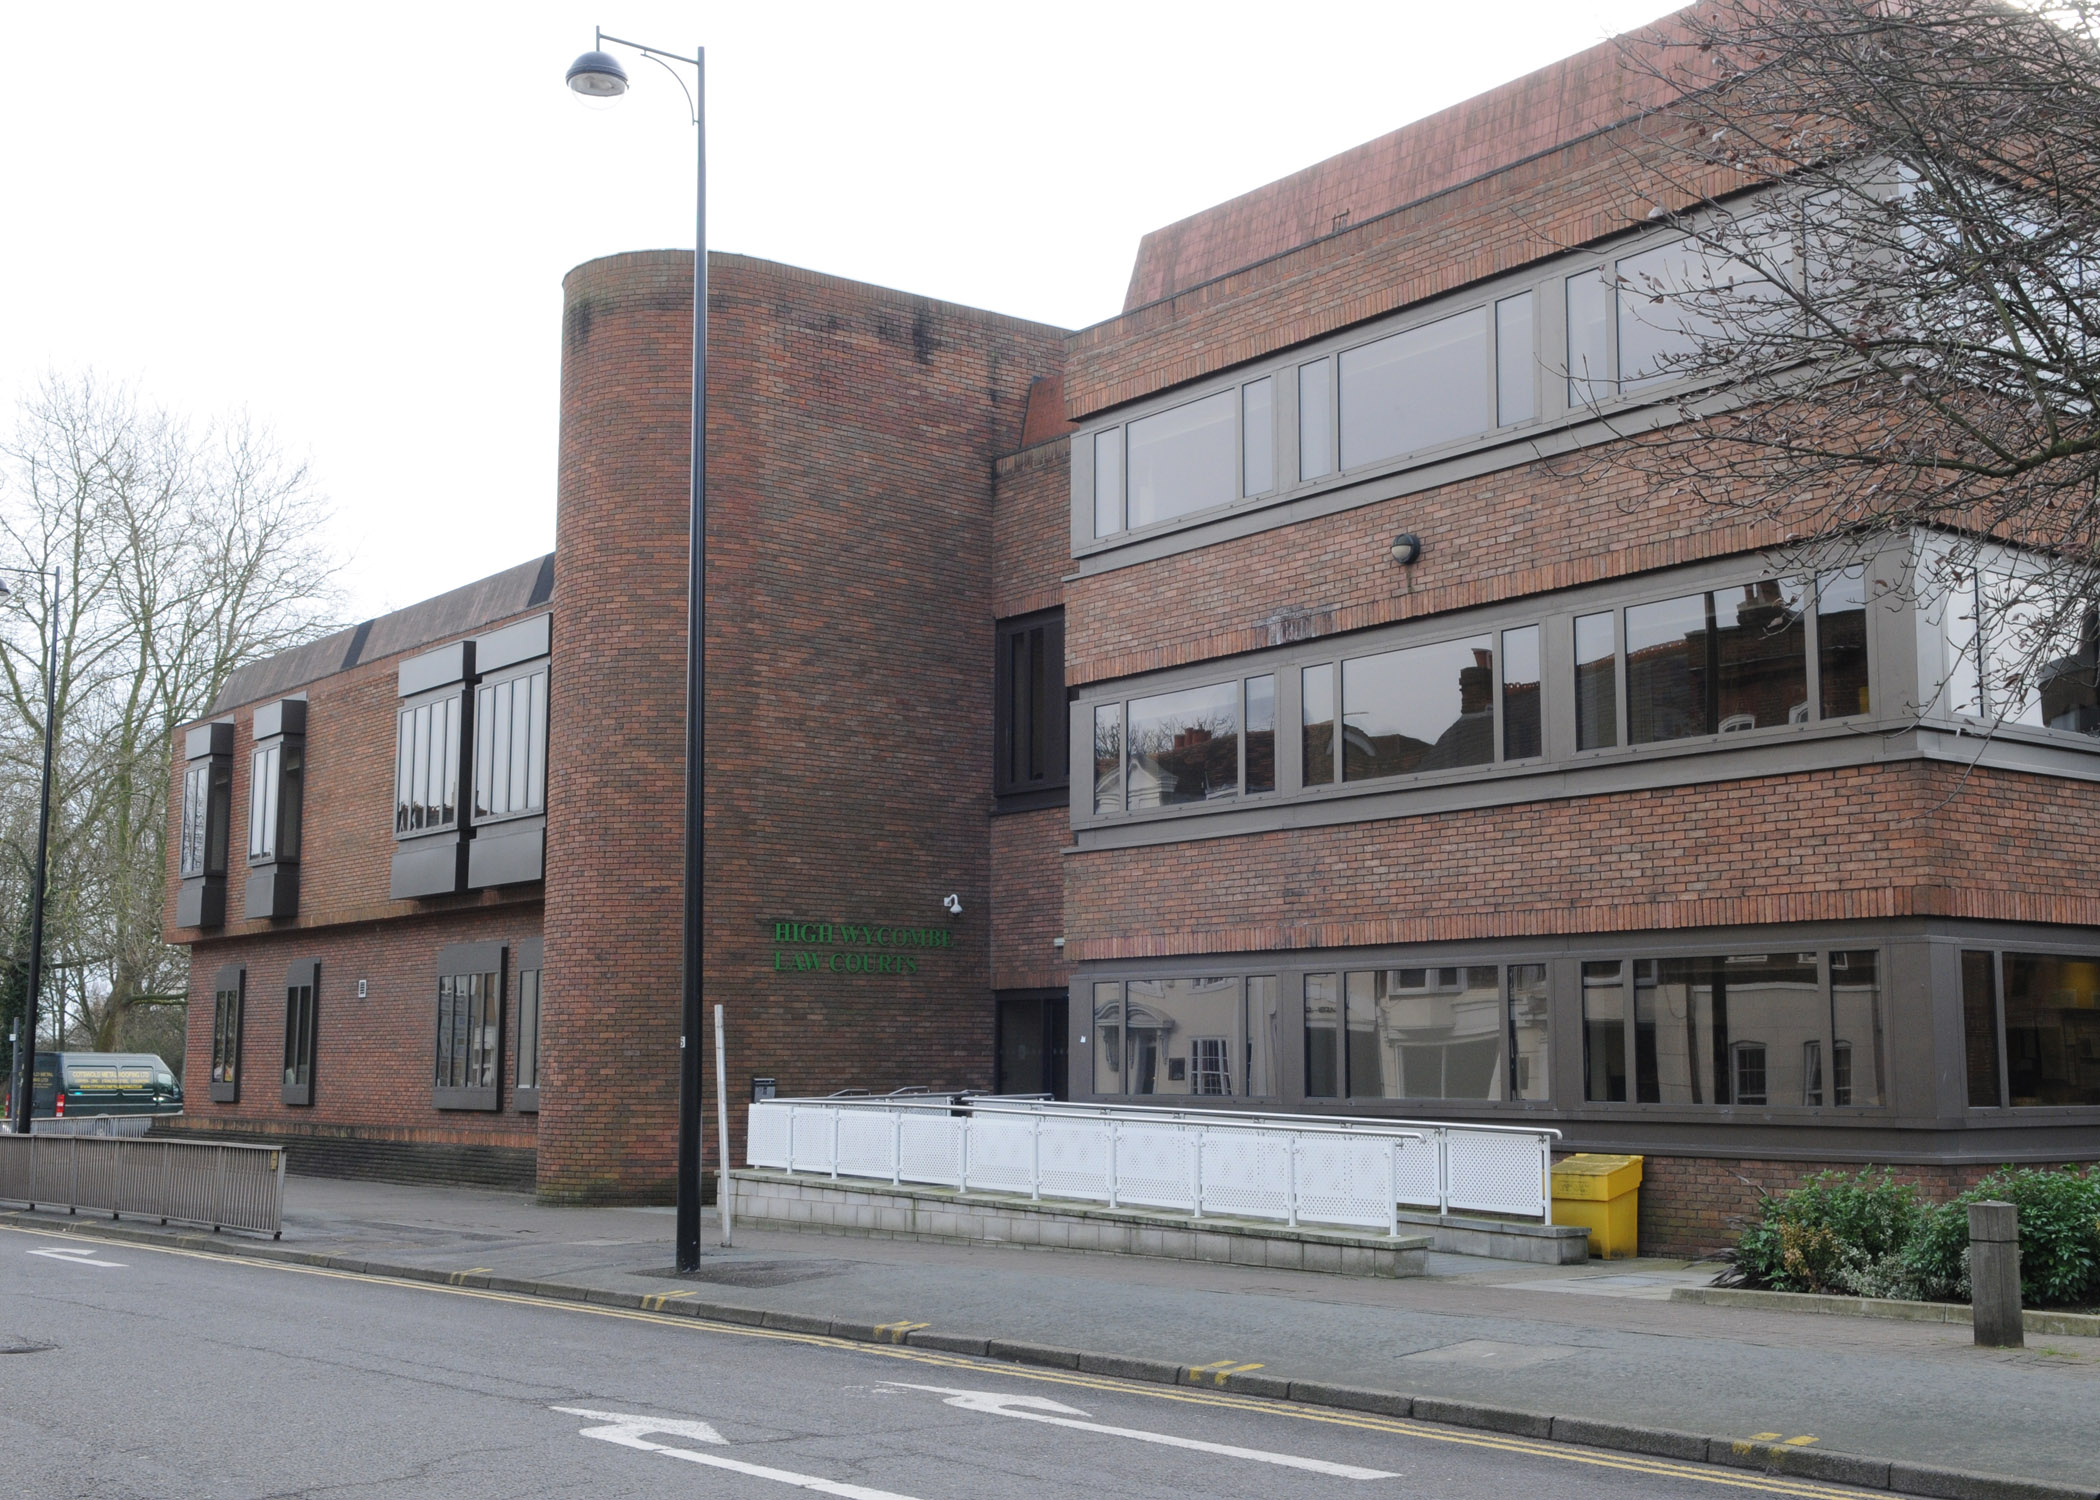 IN THE DOCK: Weekly round-up of court hearings at High Wycombe Magistrates' Court